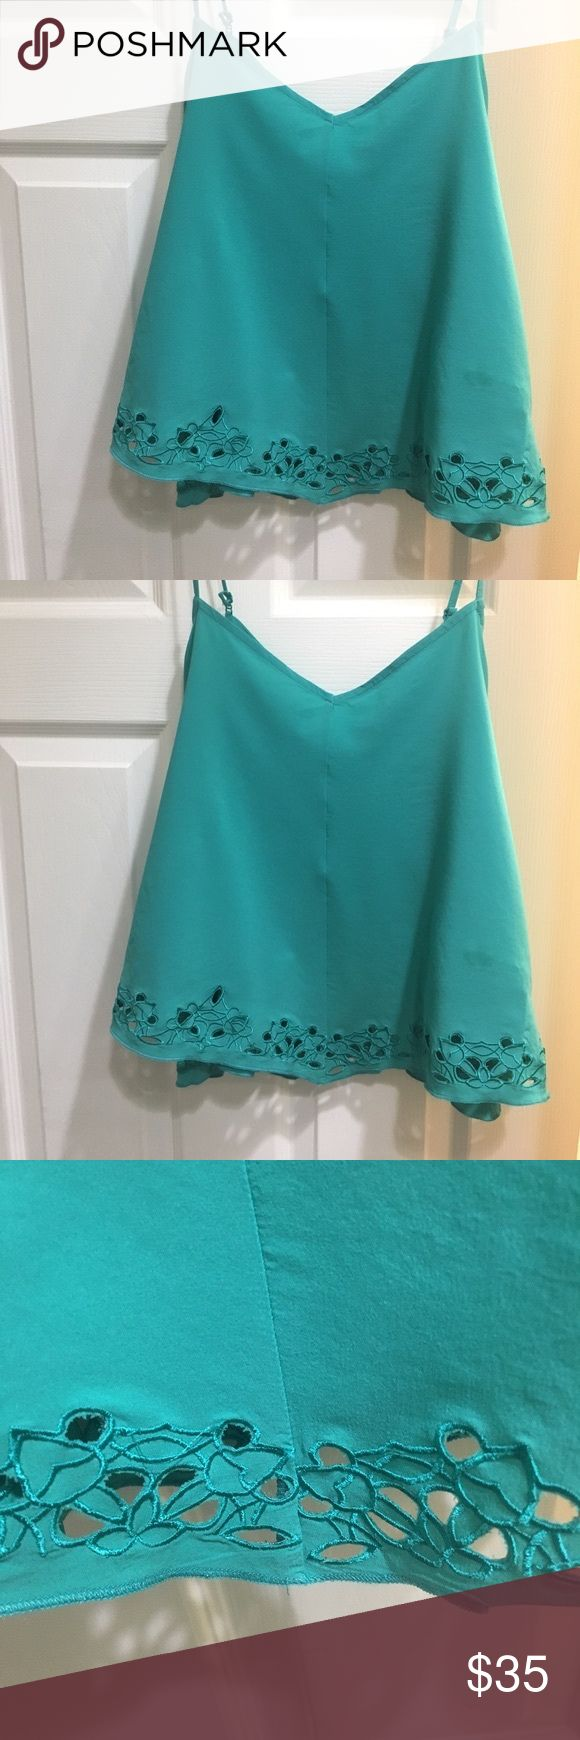 Fabletics Brice Tank Top -Green NWT Fabletics green tank top with floral detail. Lightweight, stretch woven fabric, adjustable straps, handkerchief hem with cutout embroidered detail, semi-crop length. (Although the last picture shows a black top I only have green, but thought you would like to see the back of the top) Fabletics Tops Tank Tops